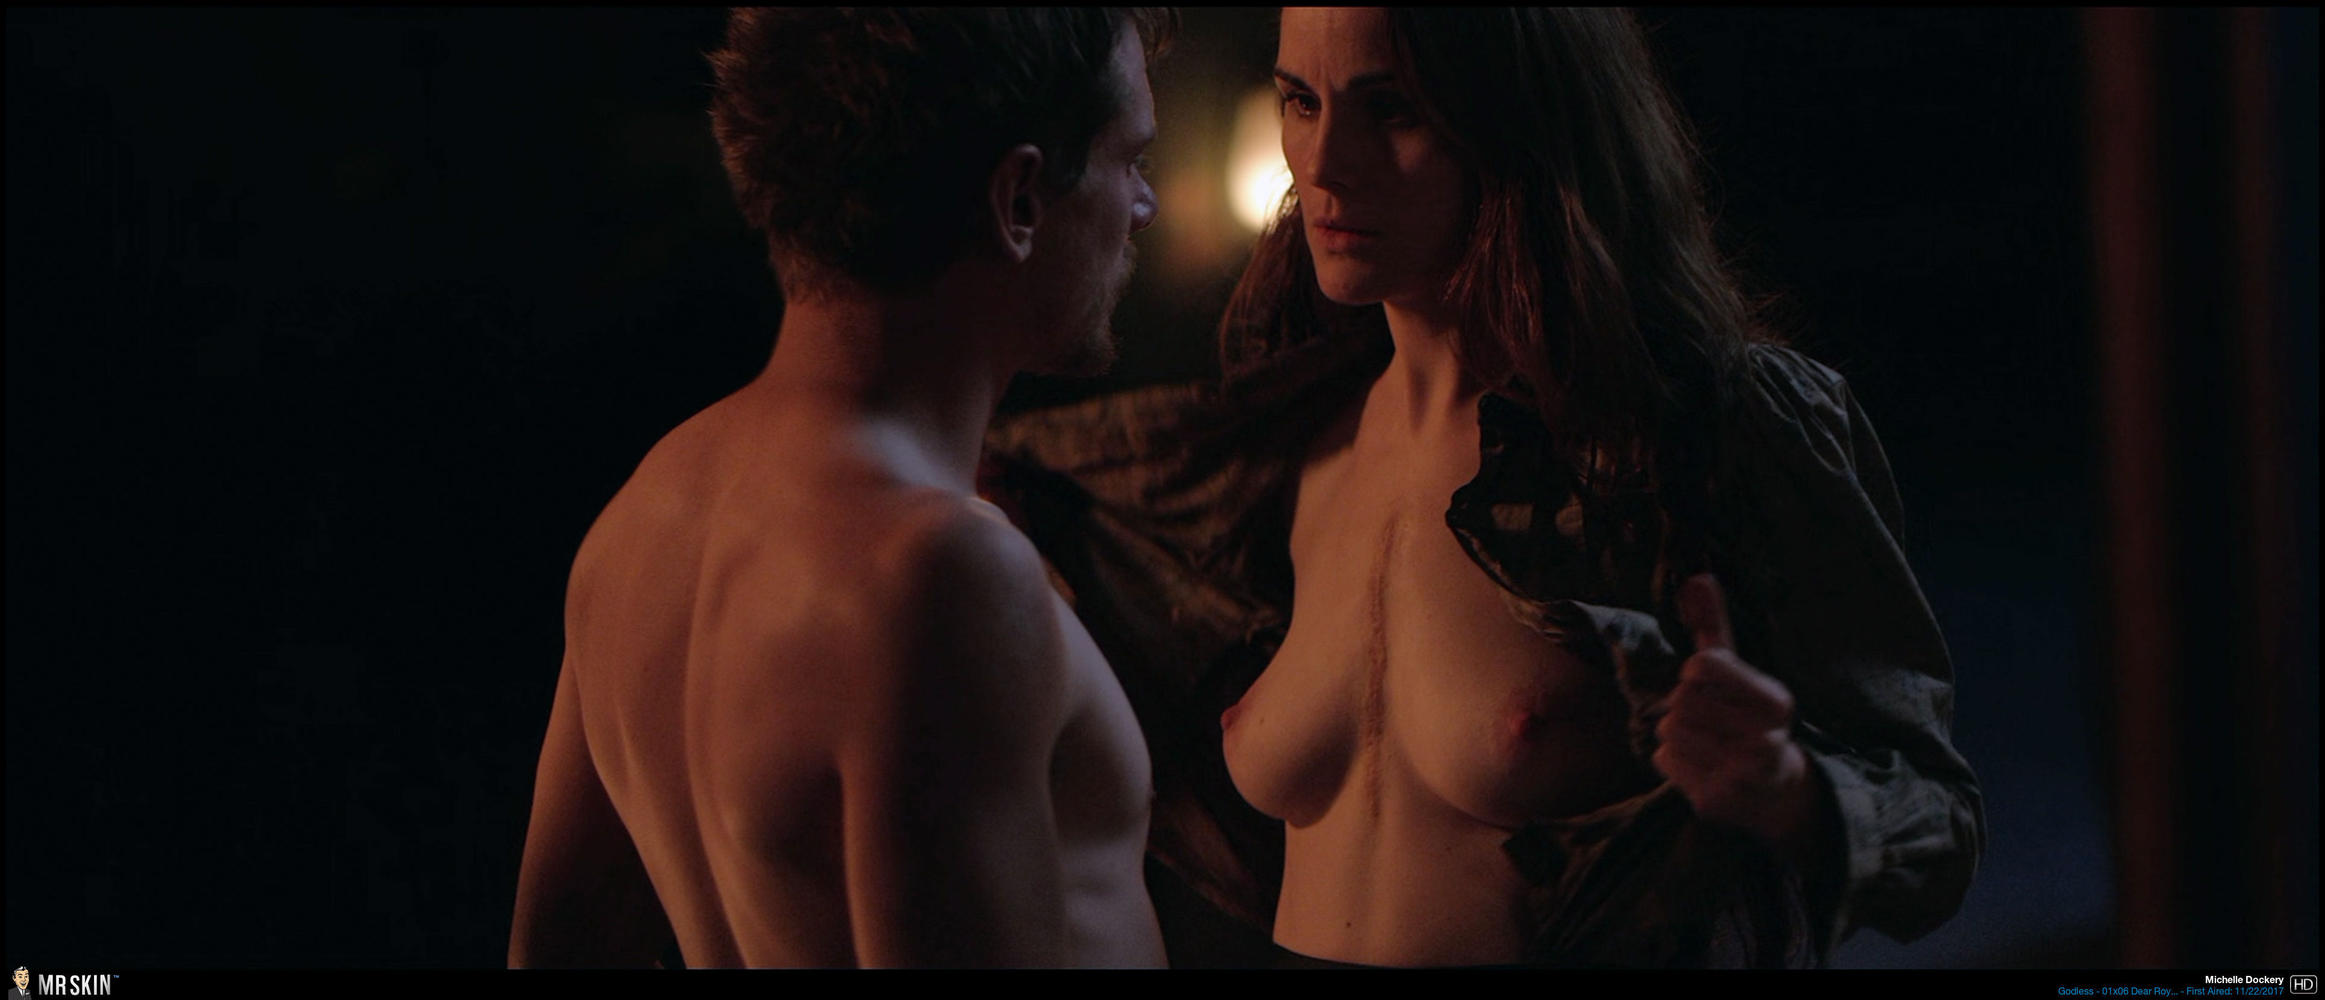 Is There Nudity In Shameless tv nudity report: godless, she's gotta have it, shameless, the